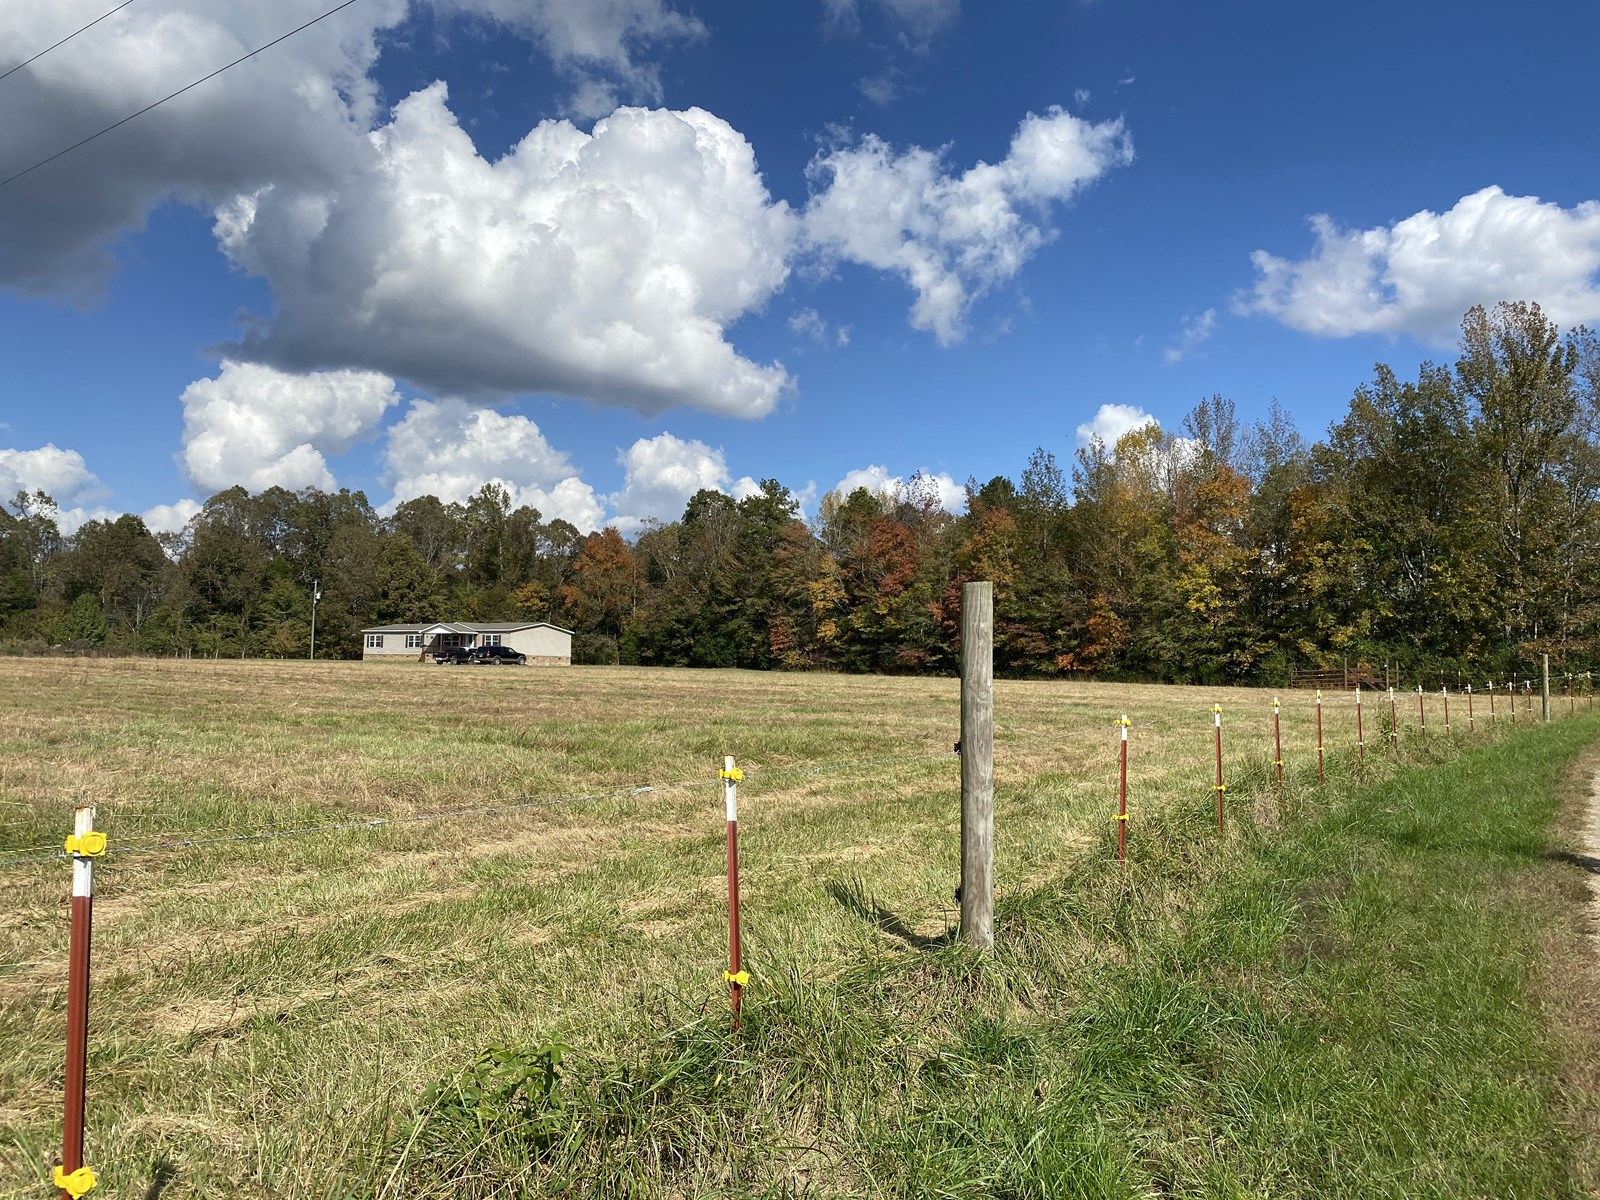 COUNTRY HOME ON ACREAGE IN TN FOR SALE, 13.5 ACRES, 3BD/2BTH